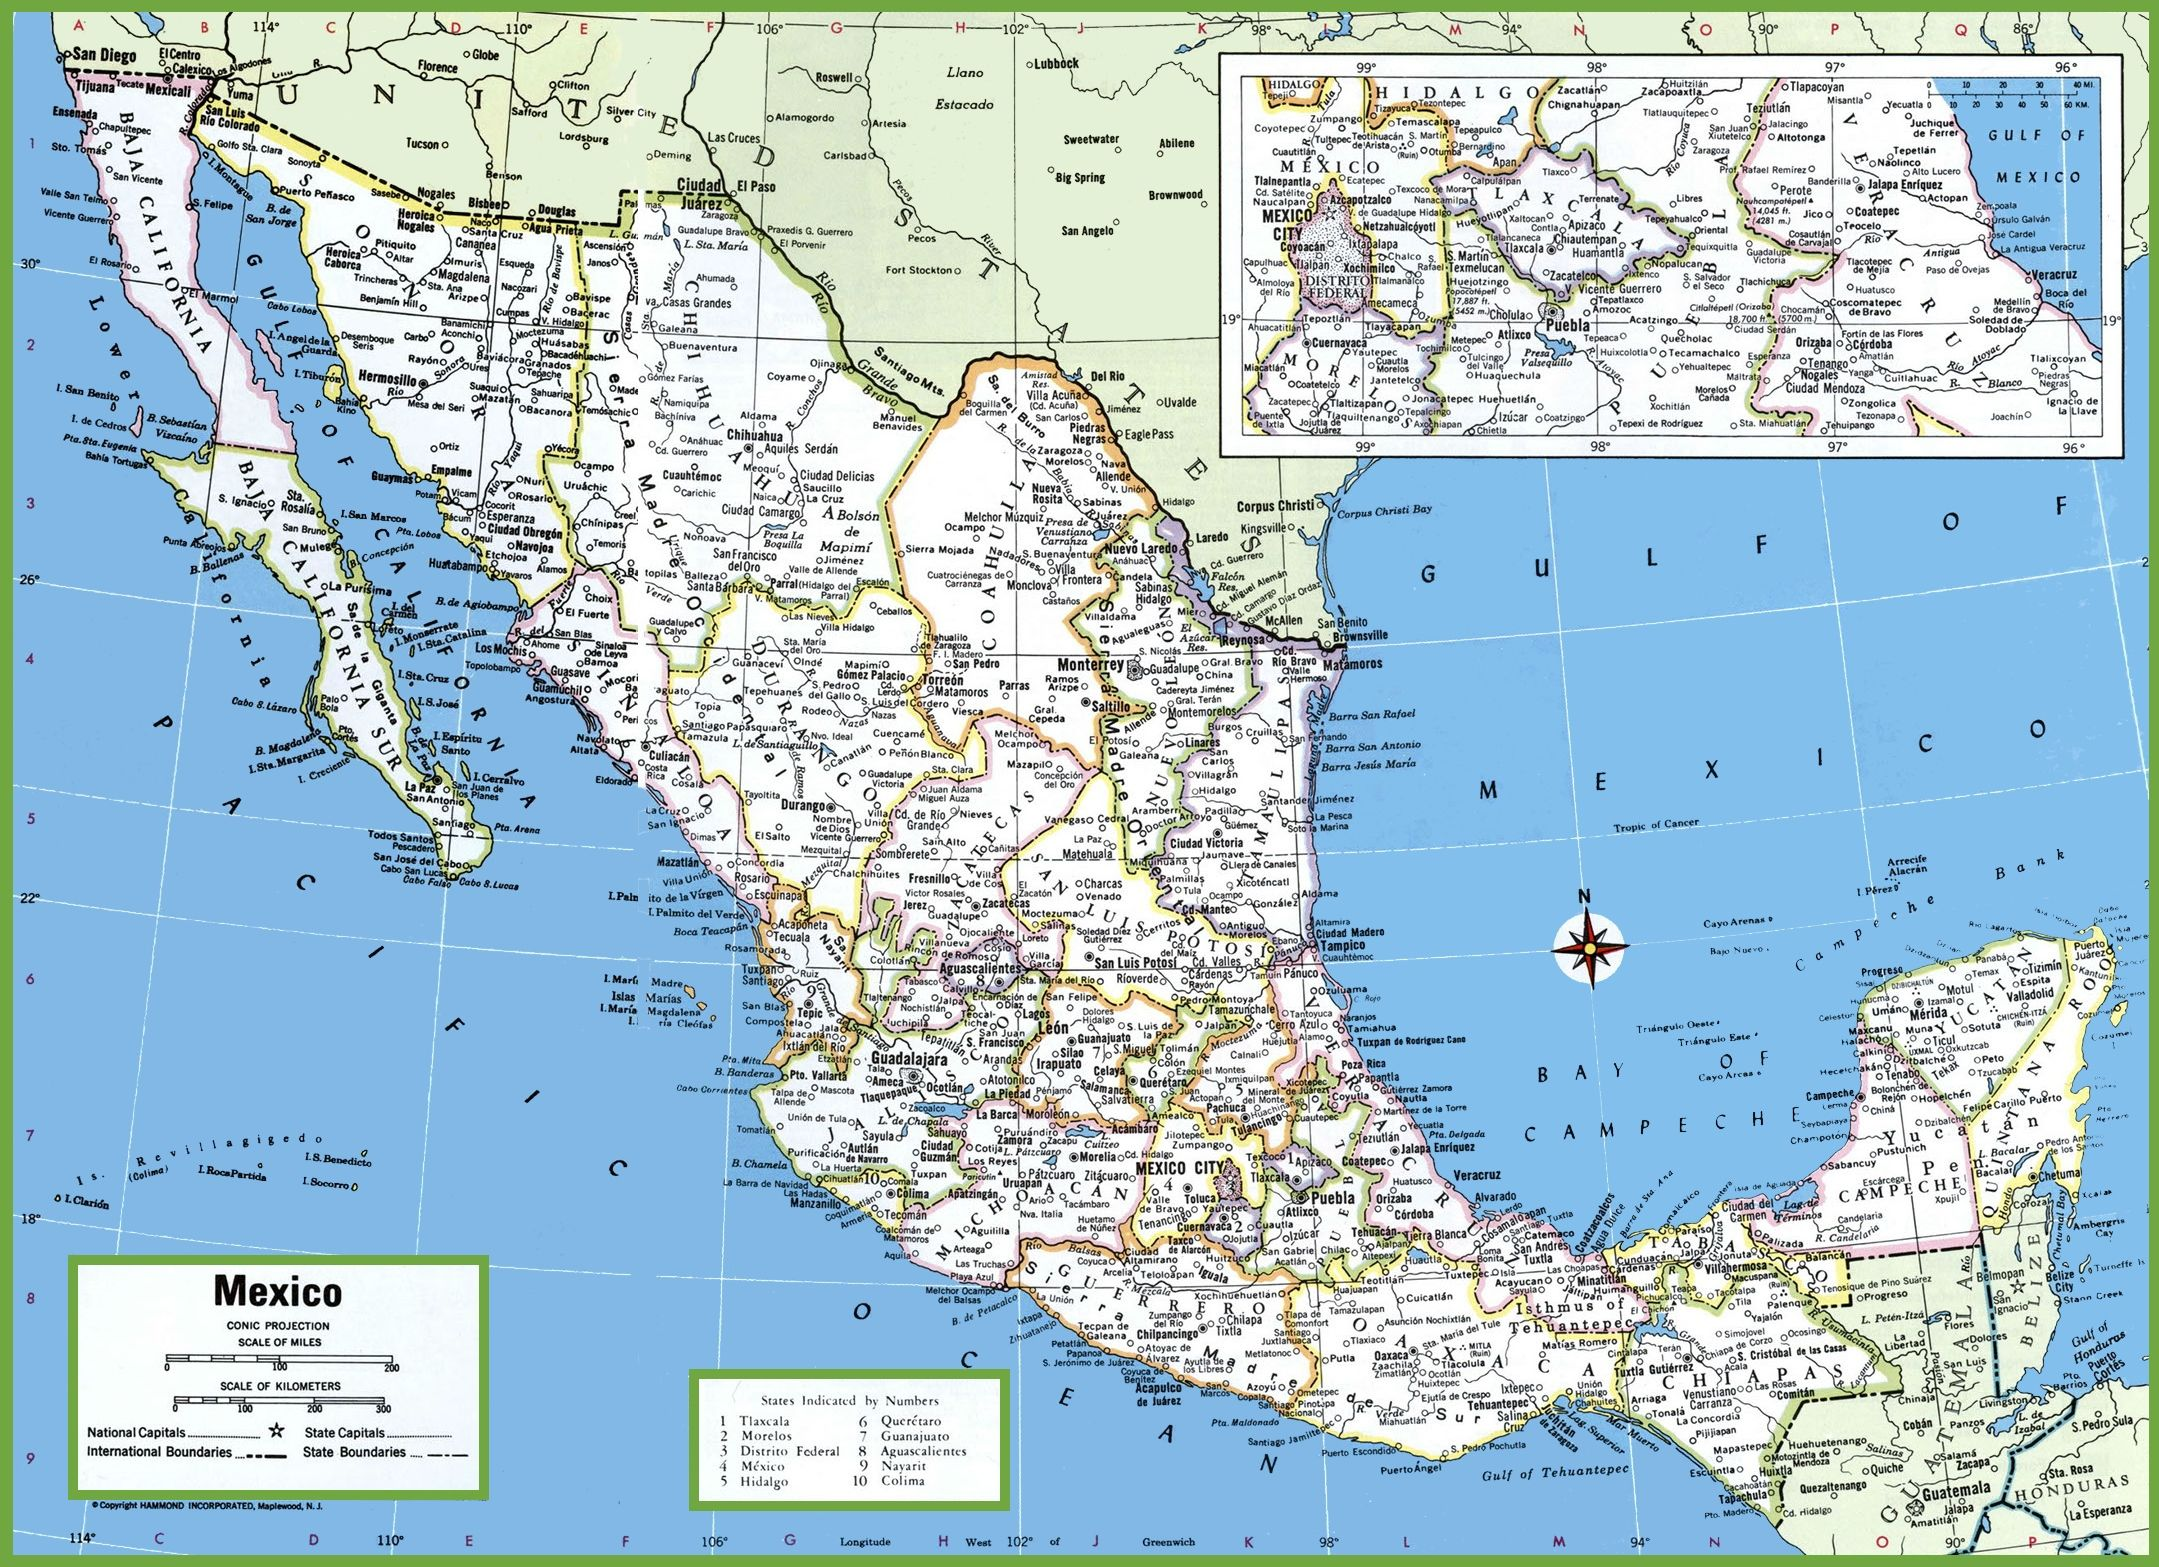 Obregon Mexico Map.Large Detailed Map Of Mexico With Cities And Towns Wanderlust In